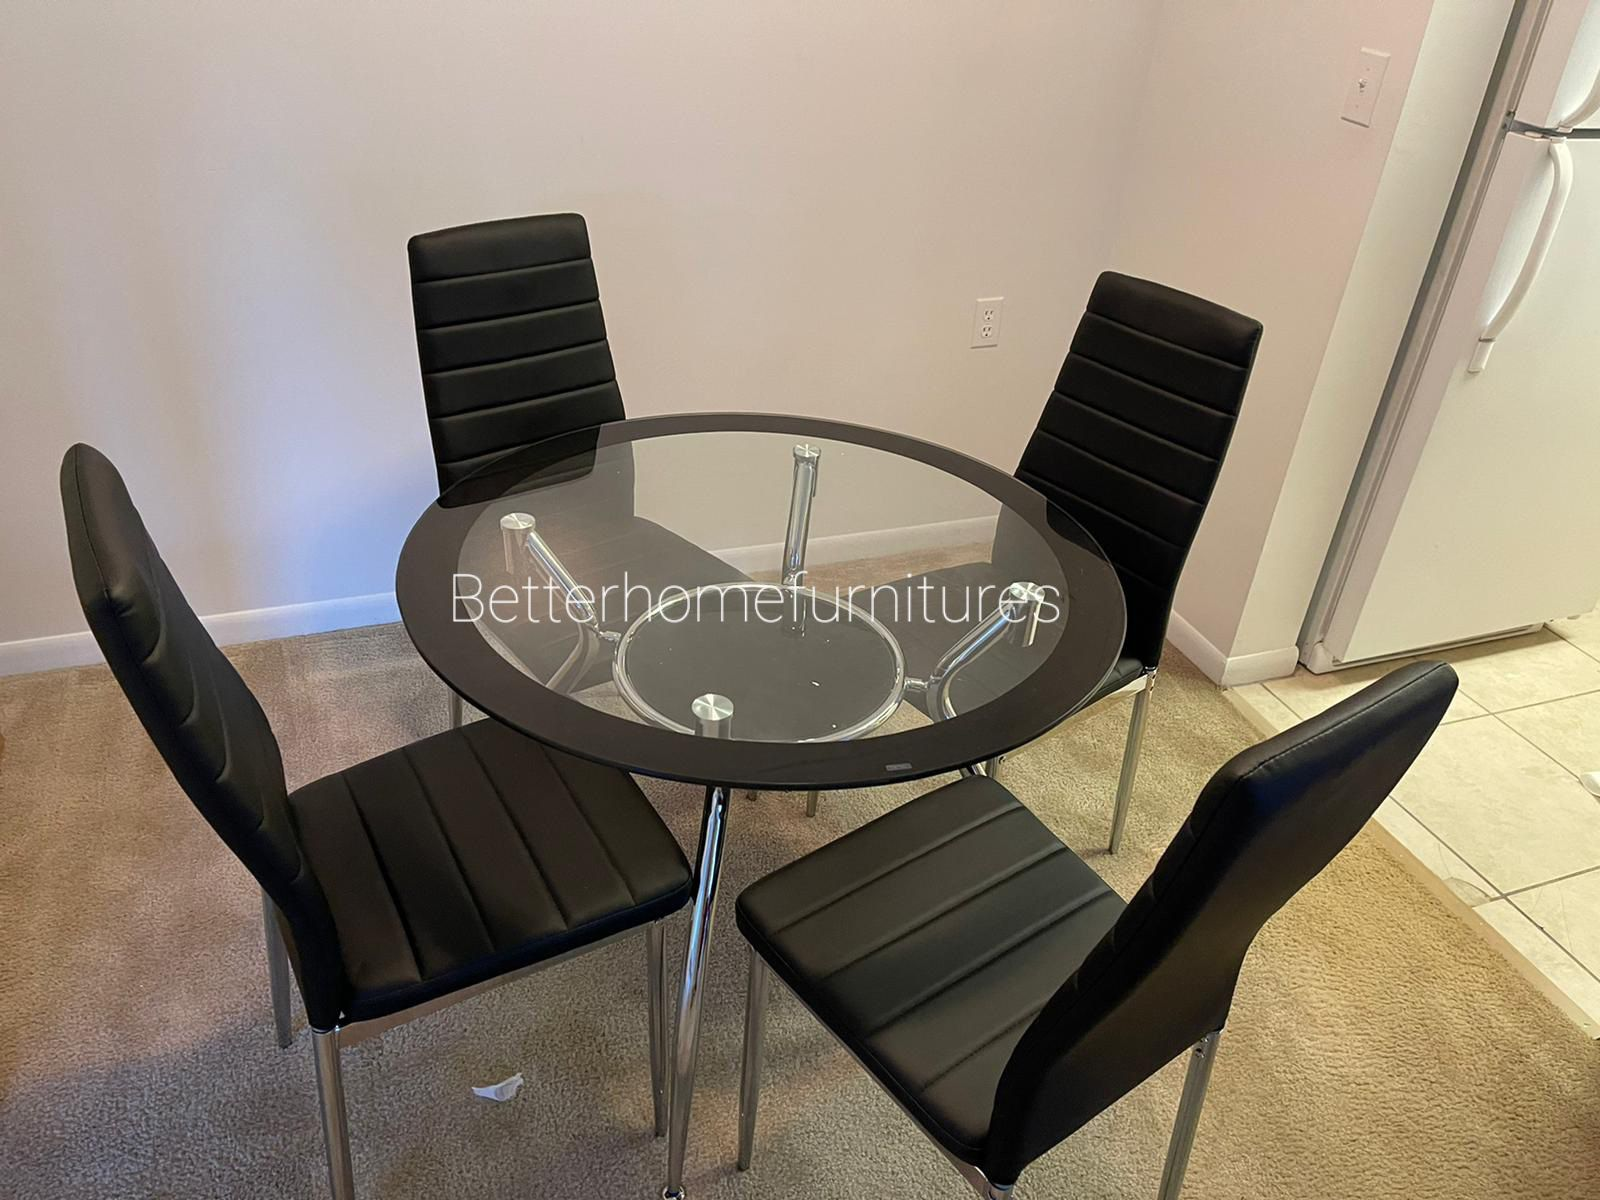 Brand new 5-piece Modern dining table, Dining room table, Dining set with Glass Tabletop and 4 chairs ( available in Grey, White, Black and Red).